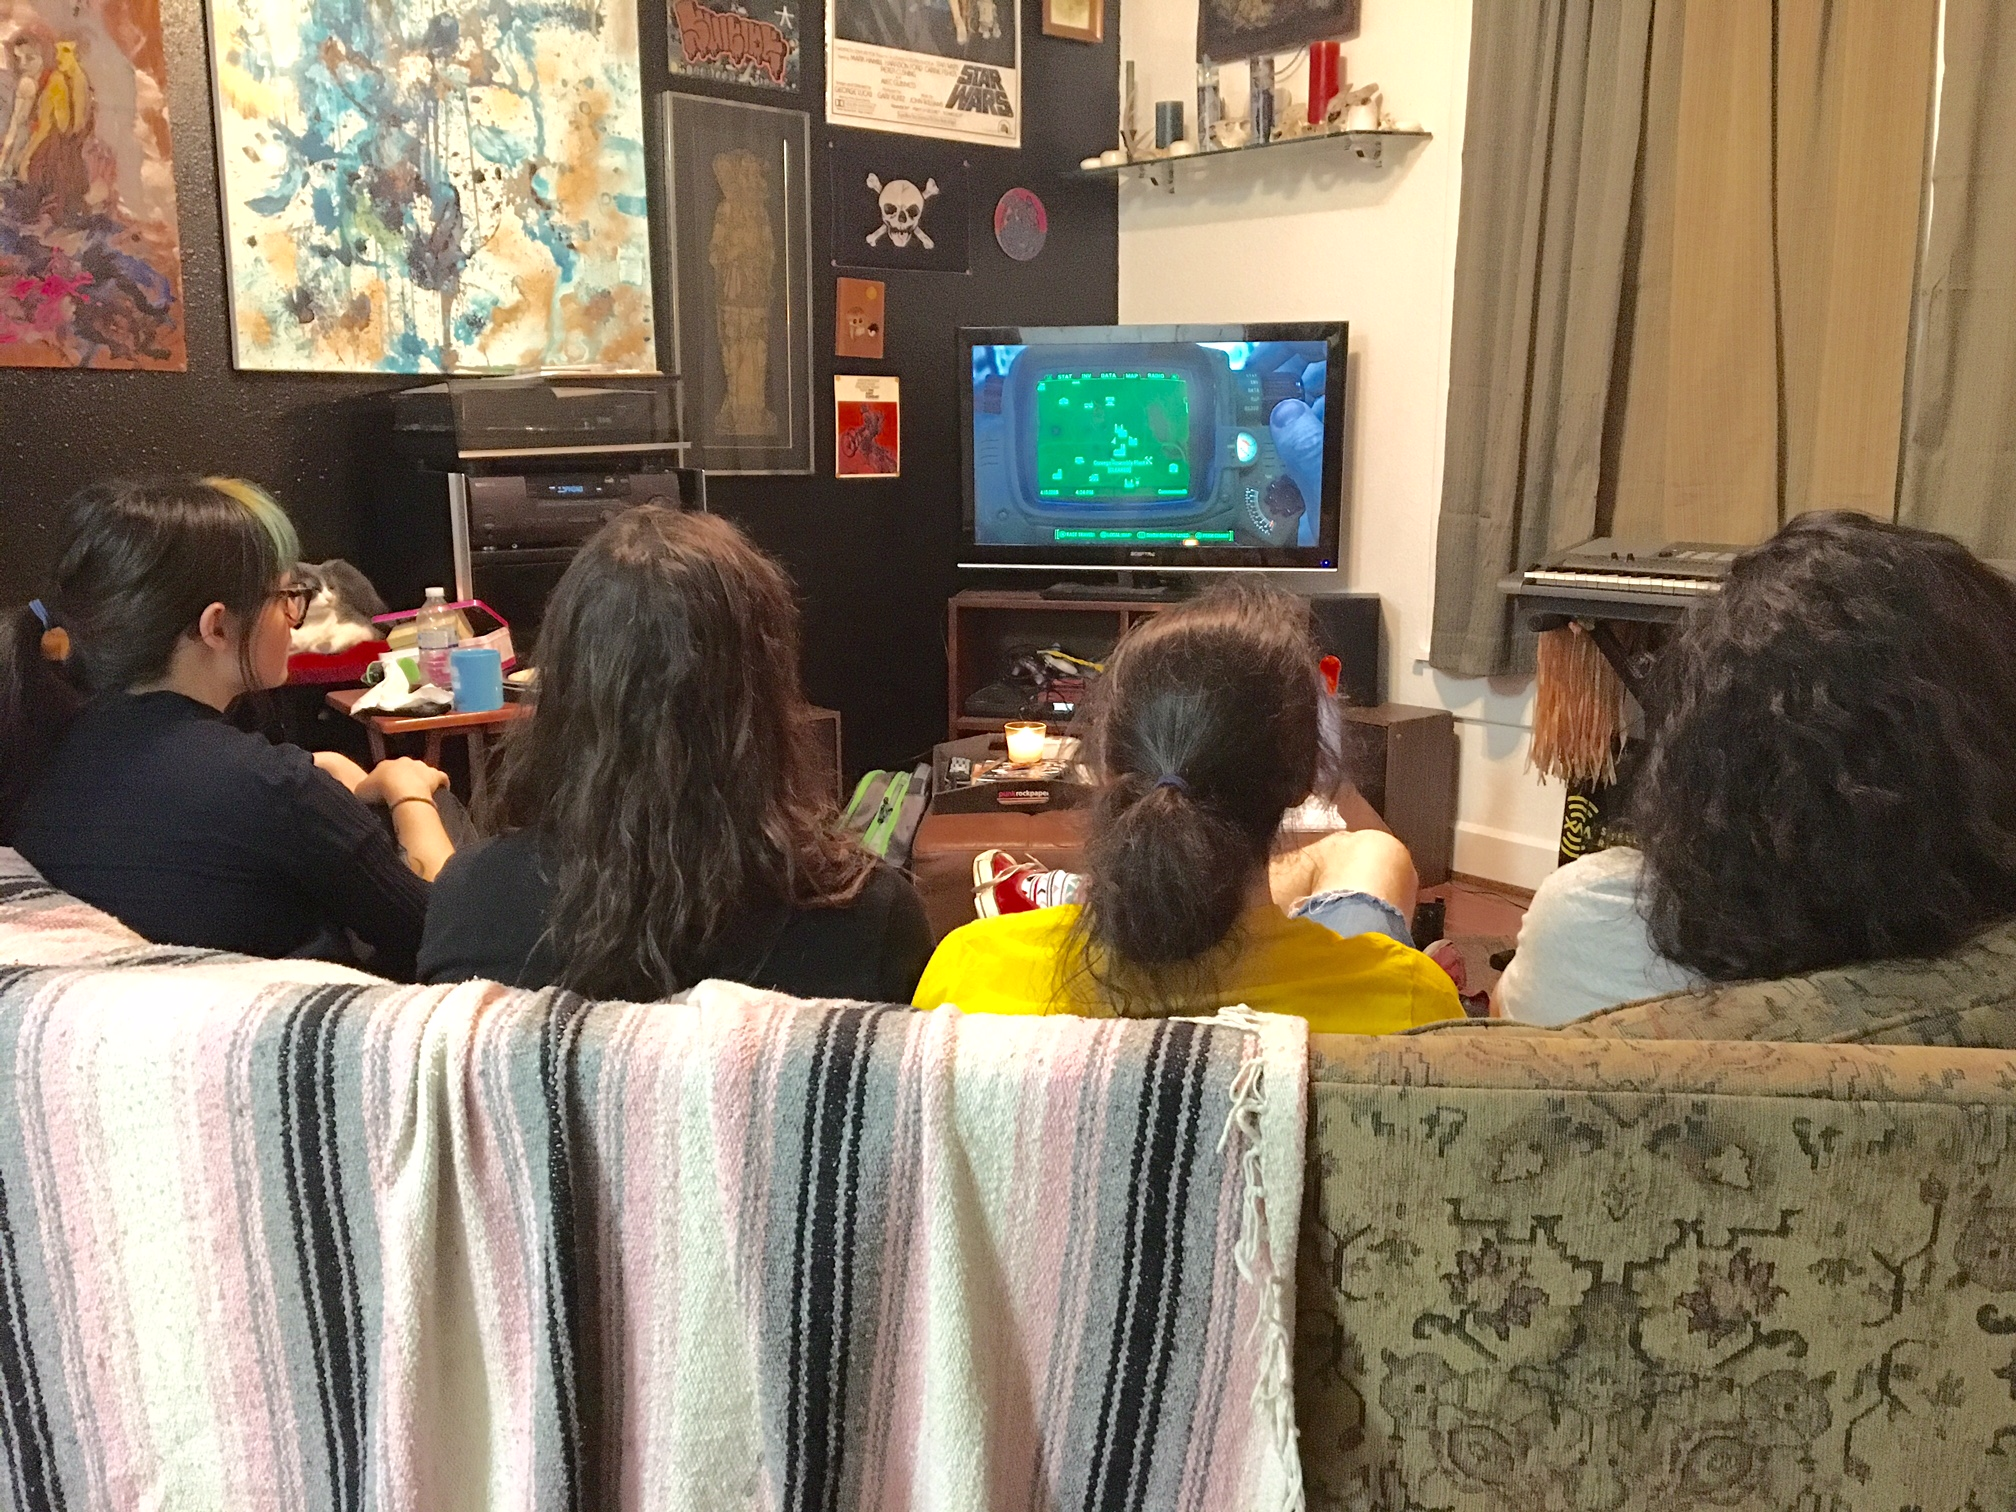 Members of Vault Dweller Playing Fallout 4 (Pictured from left to right, Emma Lylte, Todd Thompson, Shannon Paine-Jesam, and Parker Turney) - Photo by Prewitt Scott-Jackson